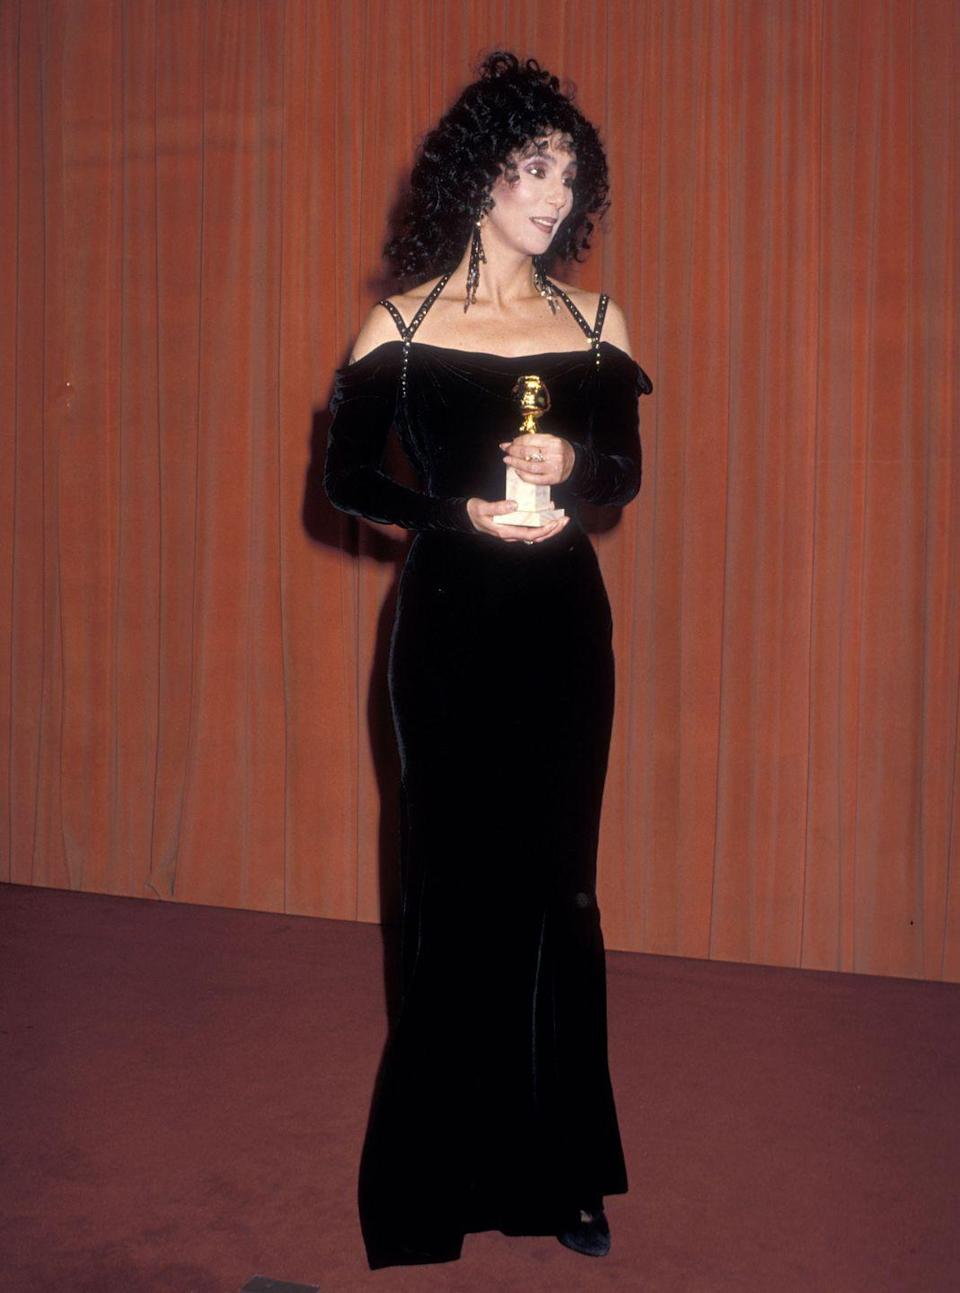 <p>Cher continued the '80s velvet trend with this long-sleeve, off-the-shoulder dress, which she paired with dangly earrings back in 1988.</p>